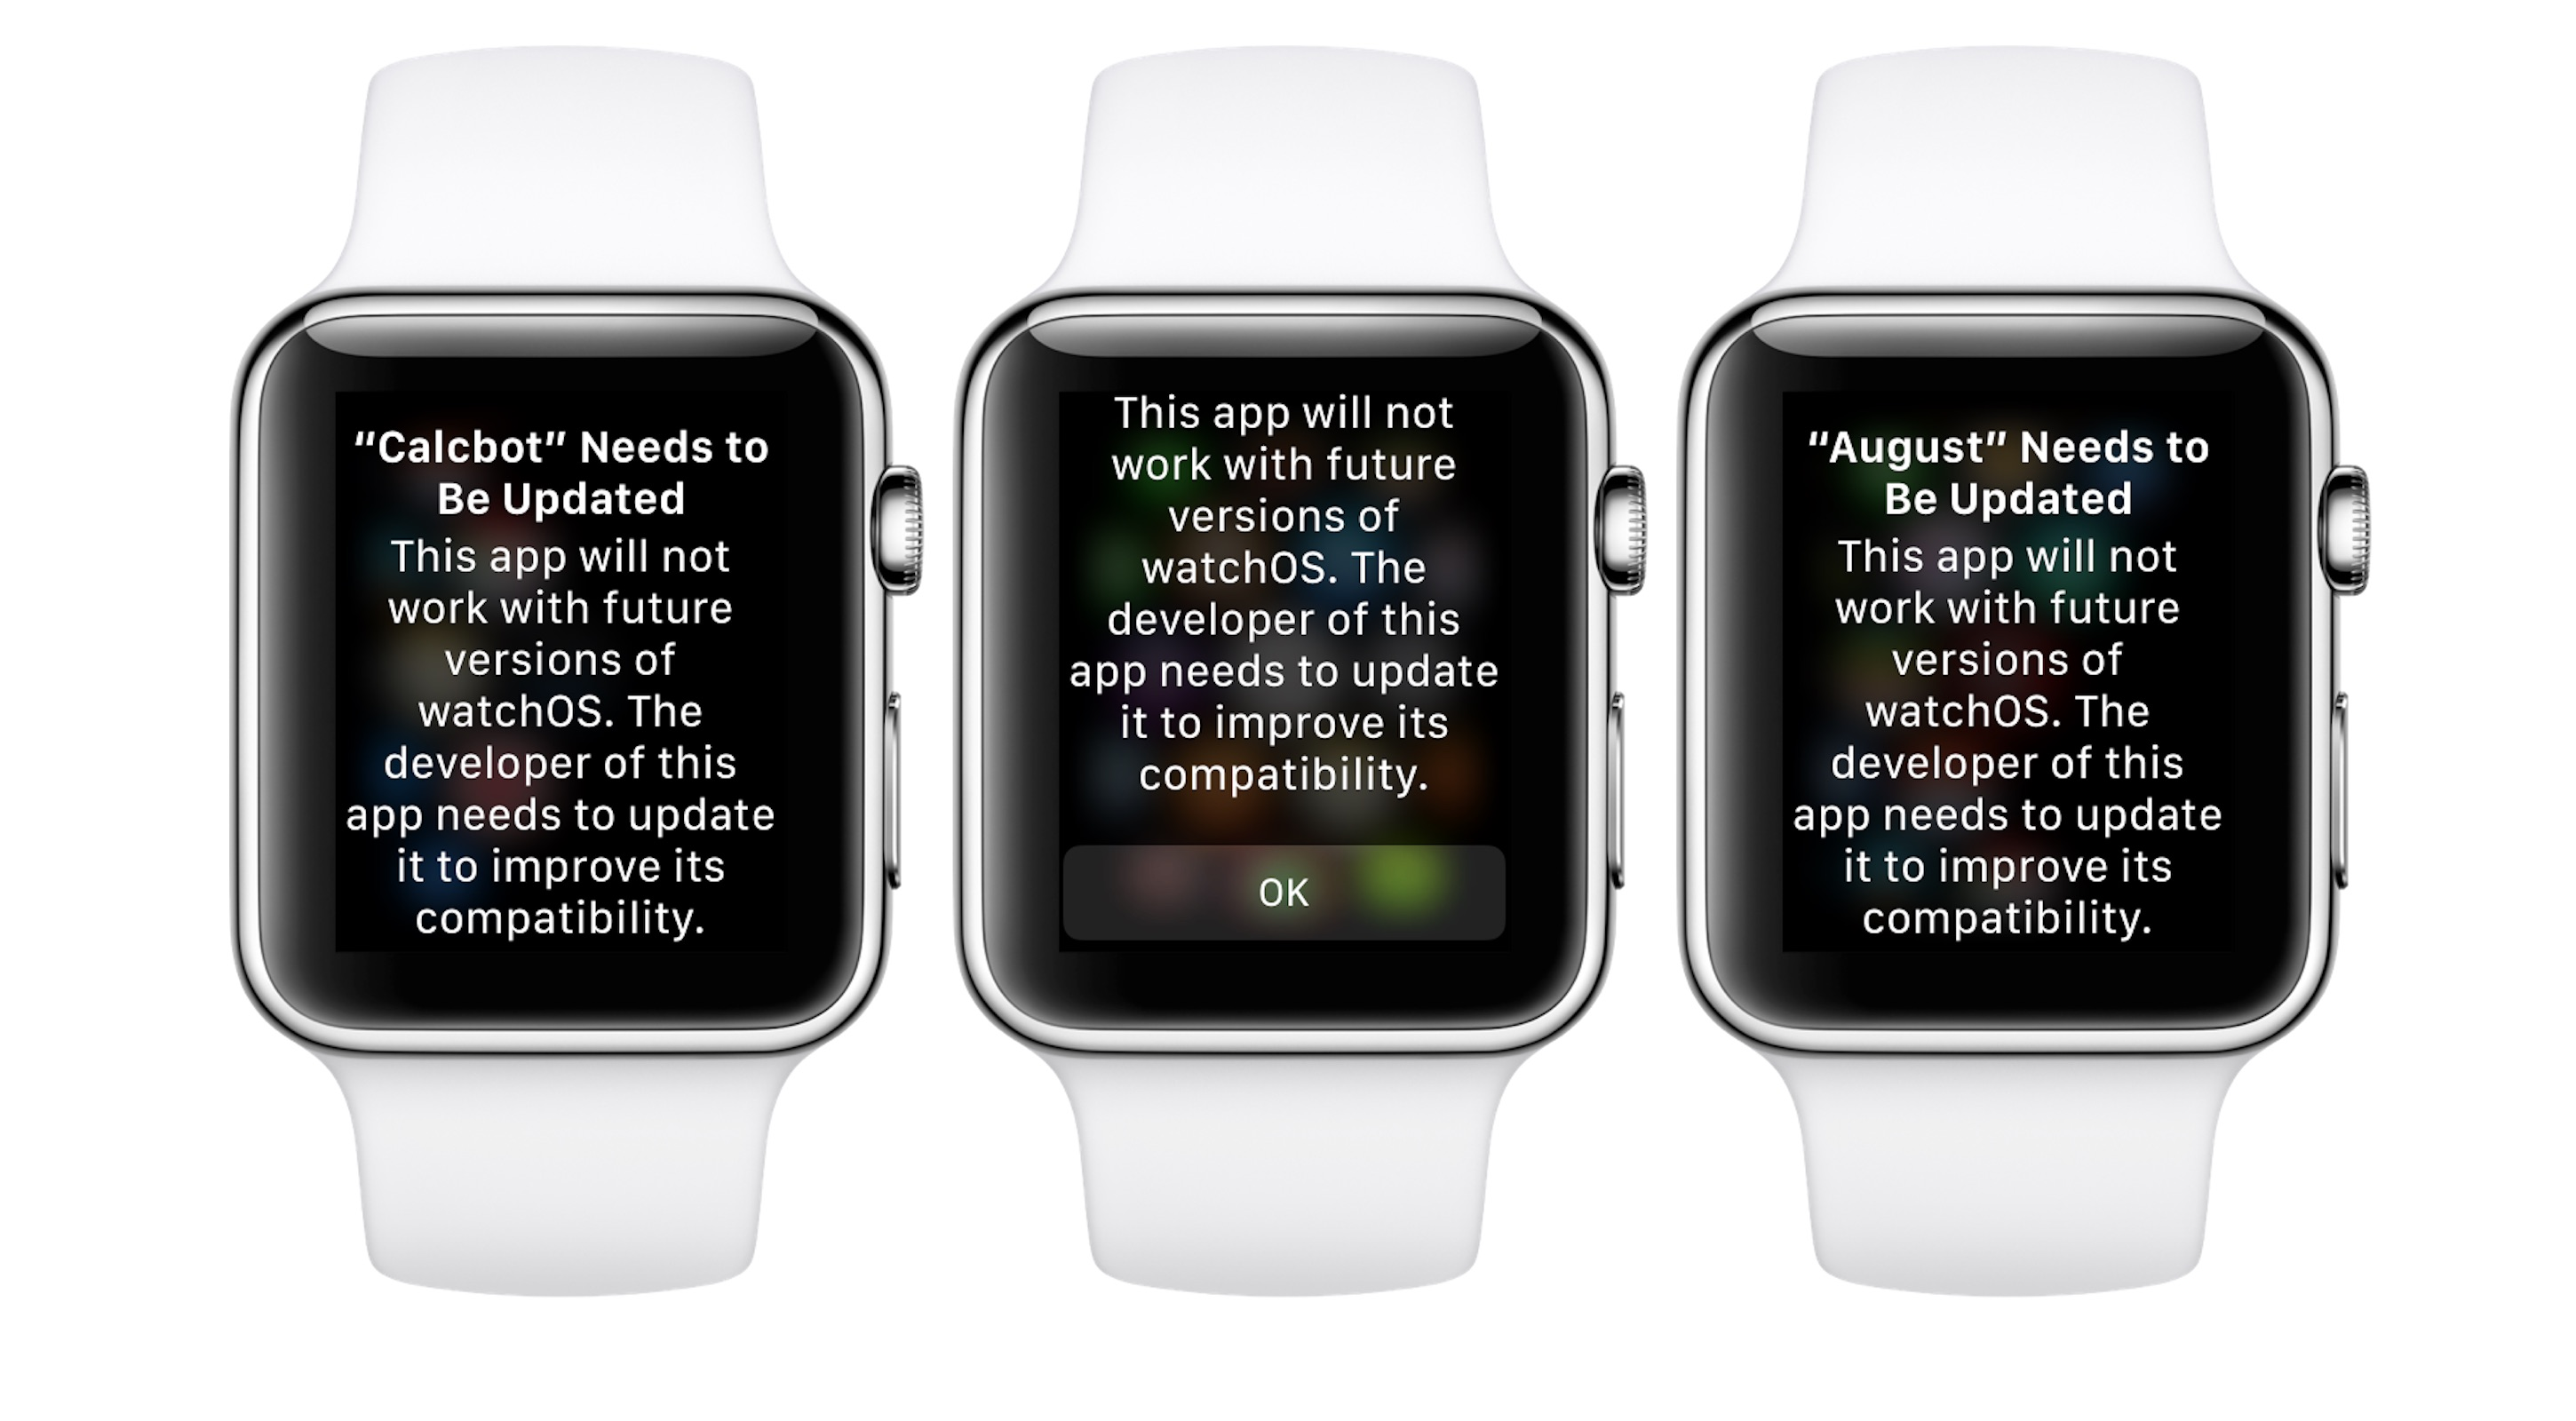 Apple Watch beta includes warning for old apps, suggests watchOS 5 will drop support